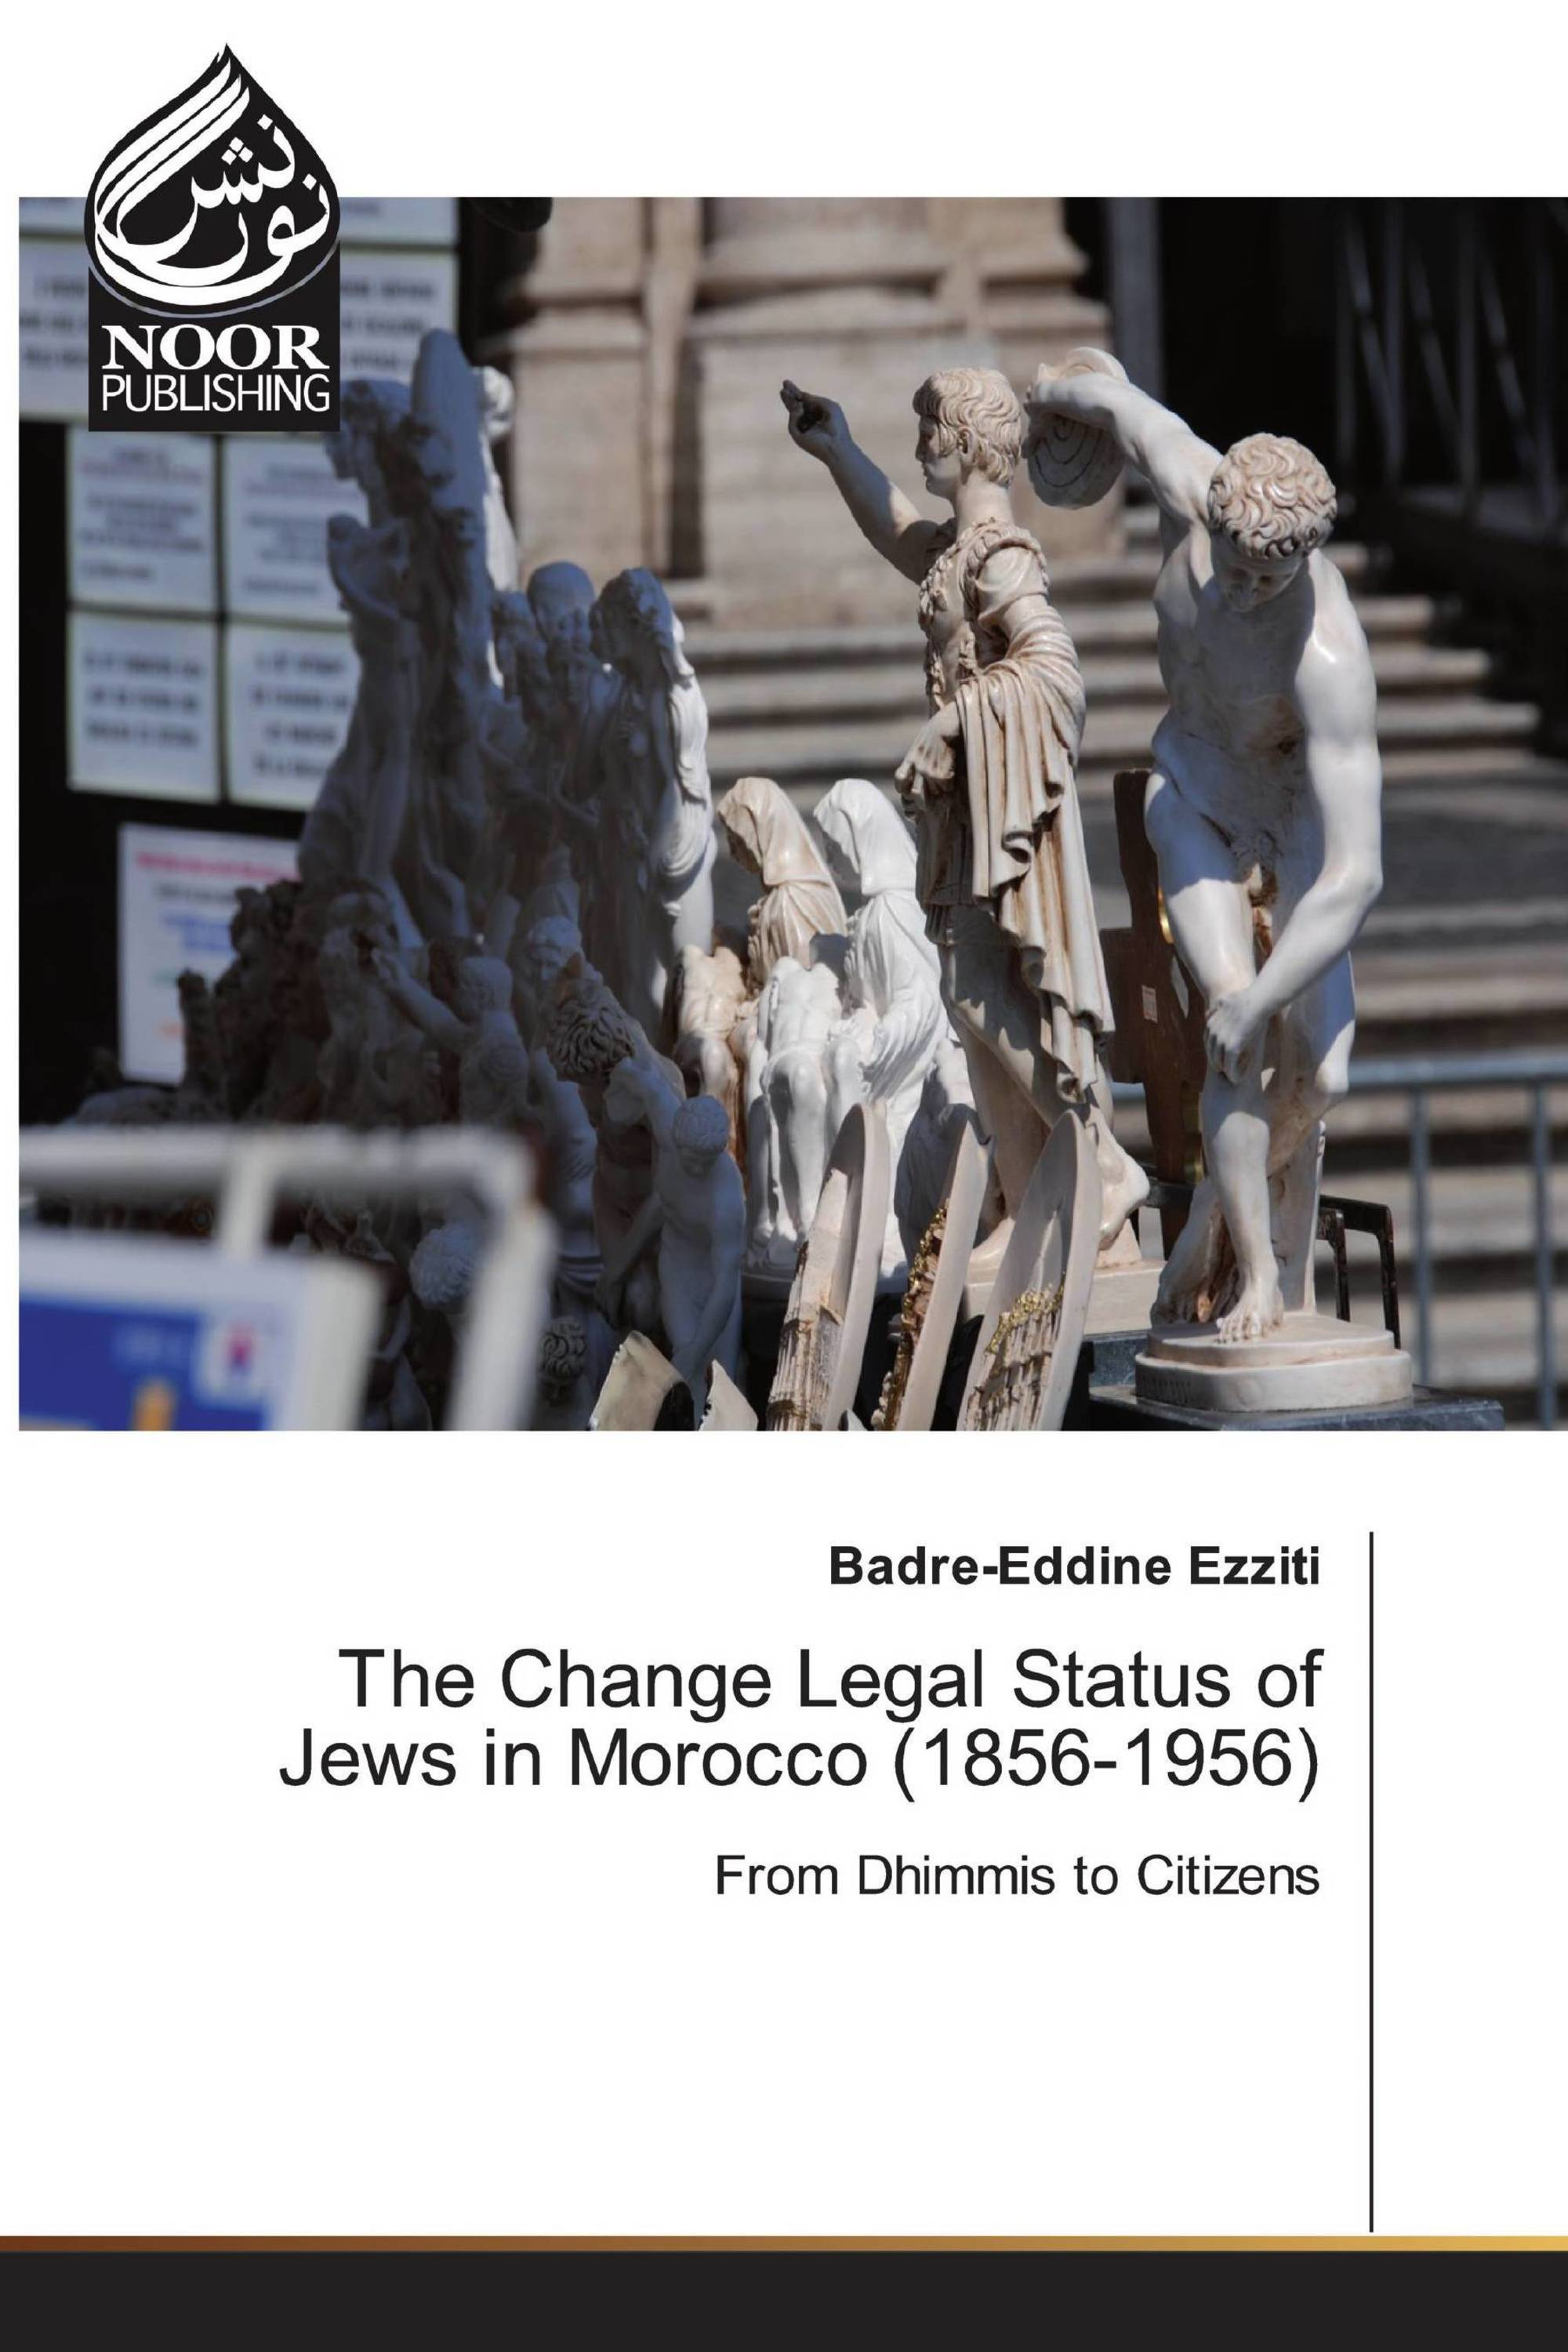 The Change Legal Status of Jews in Morocco (1856-1956)